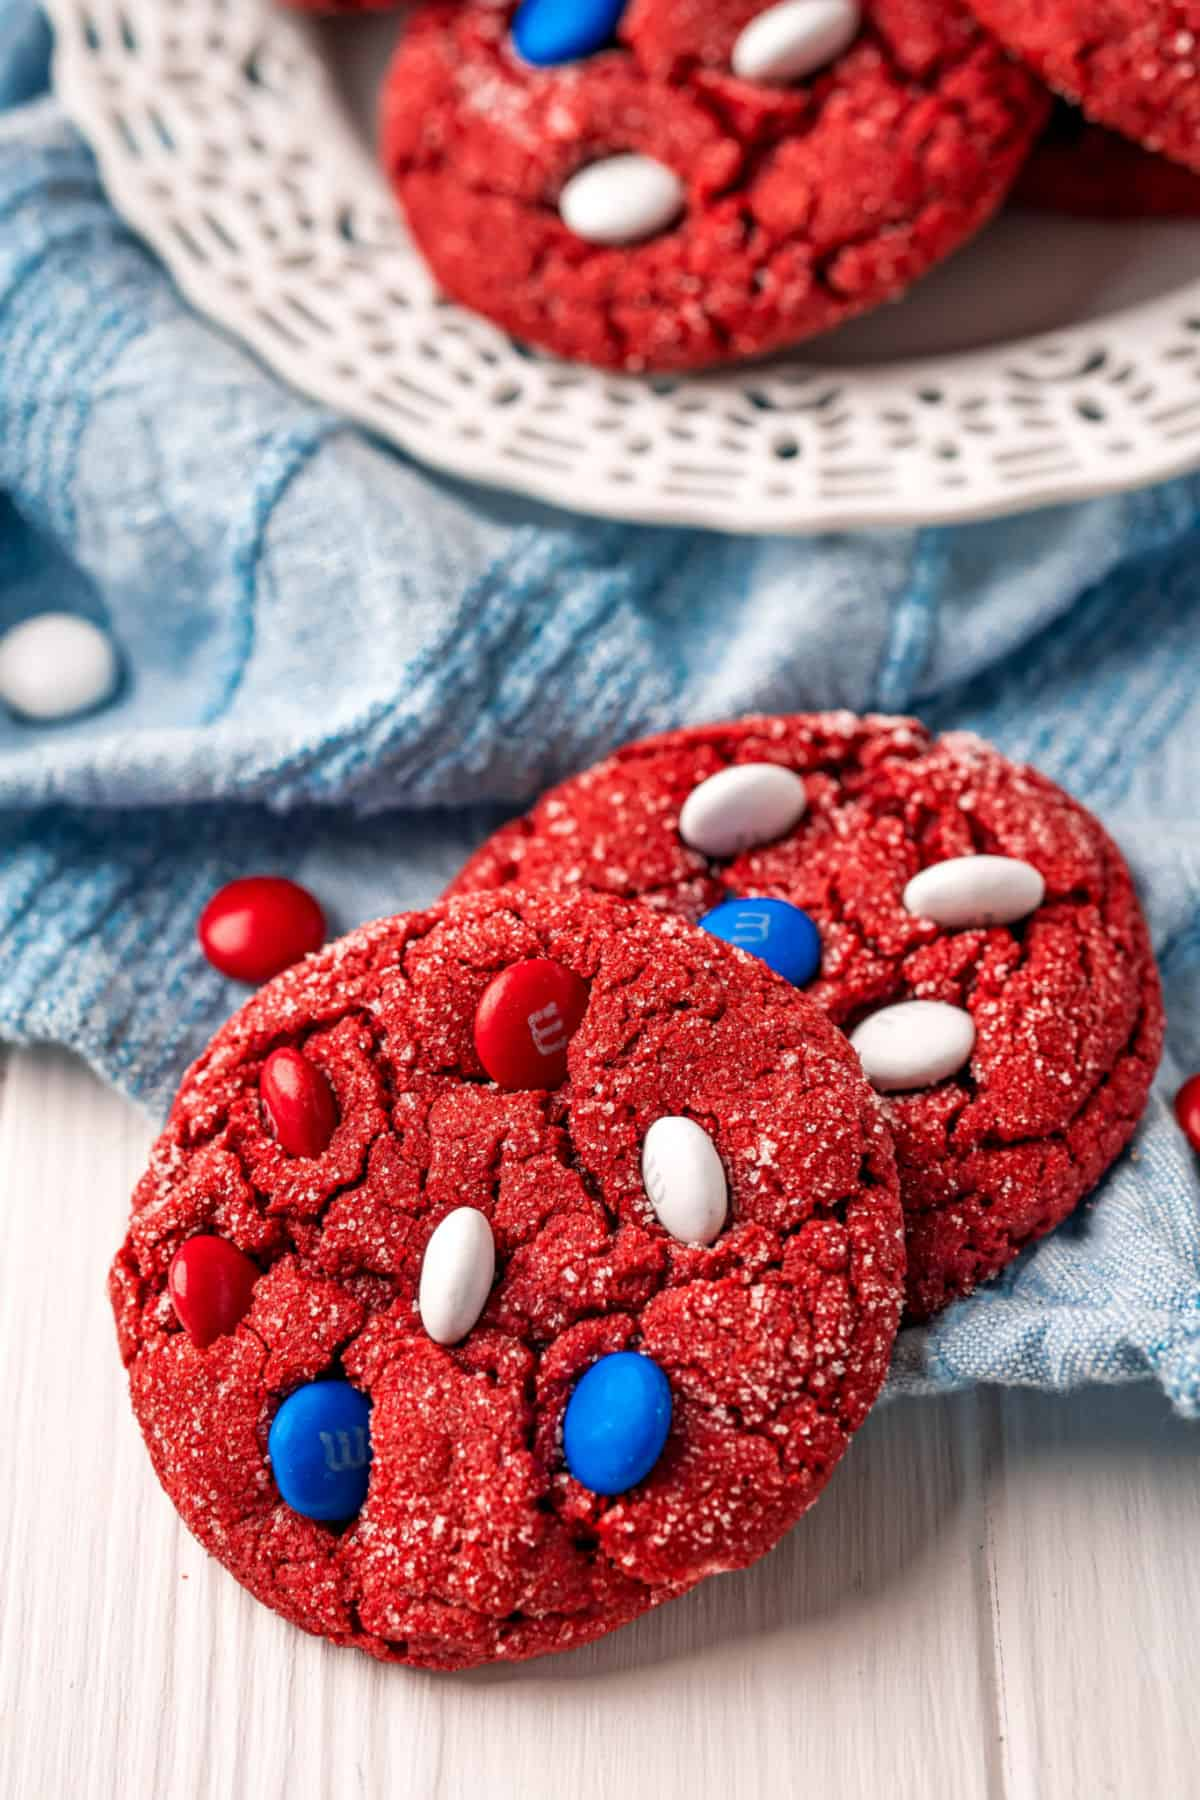 Red velvet cookies with red white and blue candy mixed in.